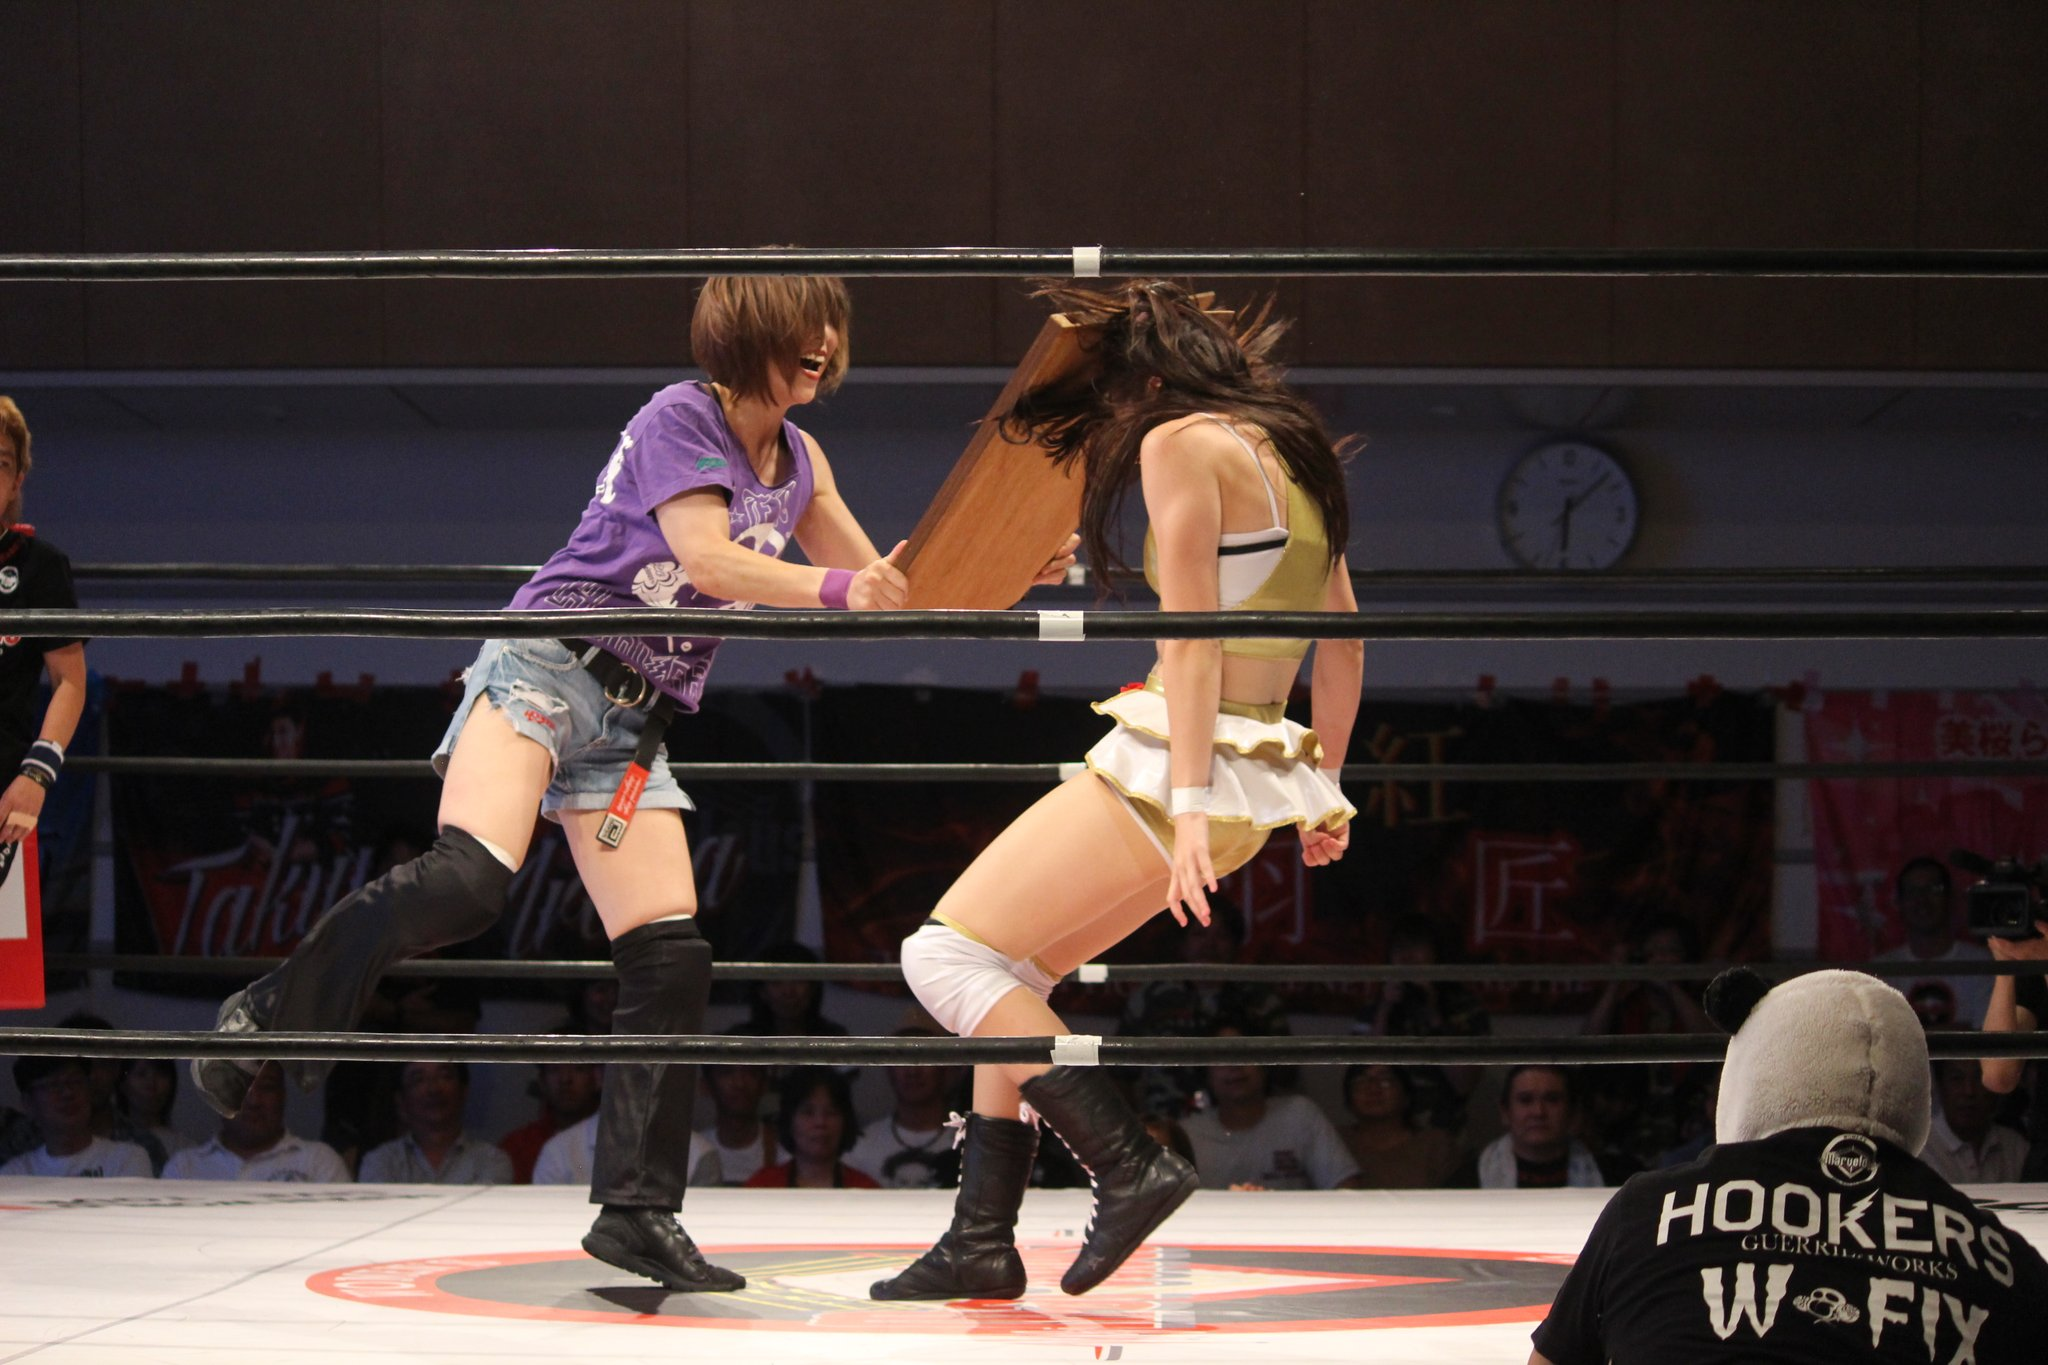 Official Japanese Wrestling Discussion Thread - Page 315